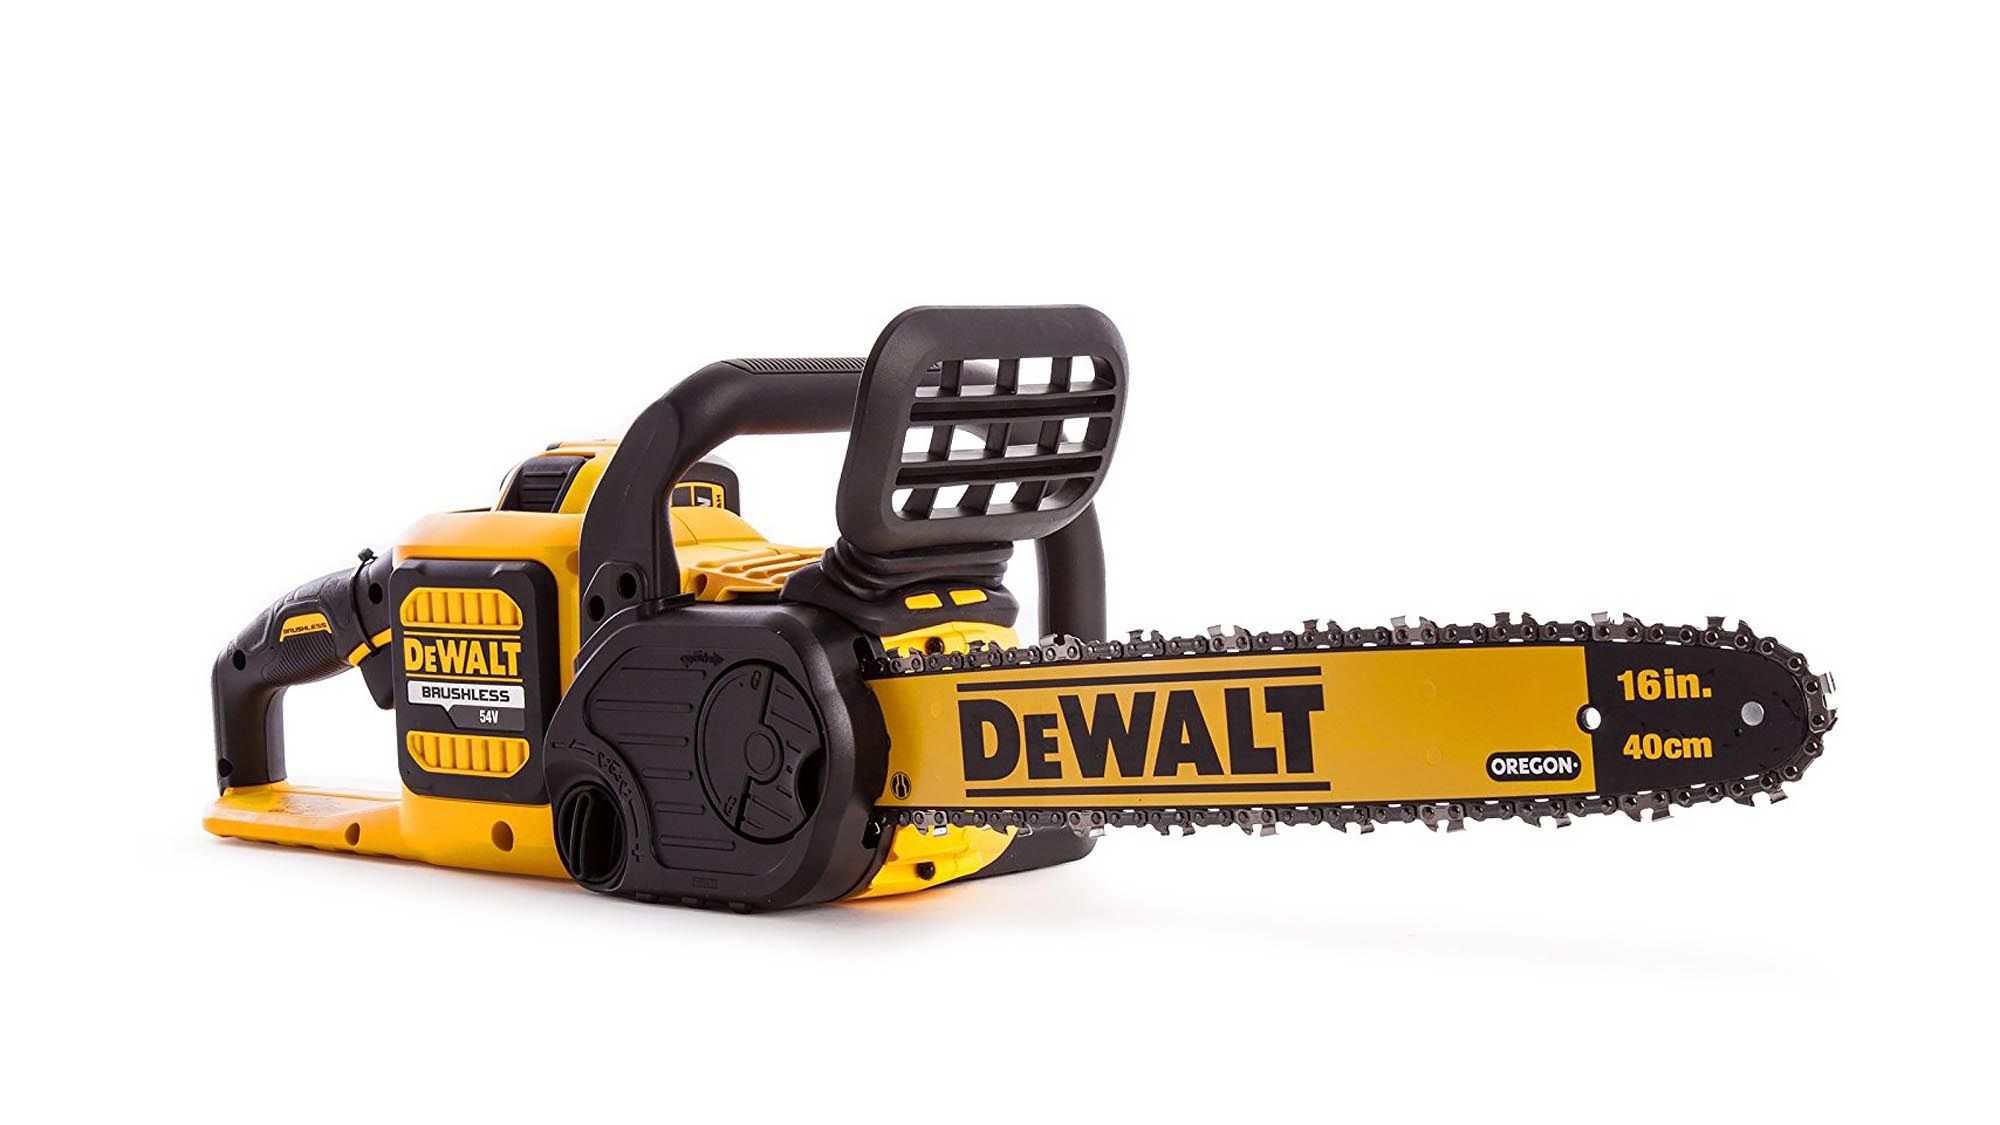 Best chainsaws make light work of heavy pruning jobs from 50 the dcm575 is an awesome chainsaw although cordless it doesnt compromise on power at all indeed its 15ms chain speed is the fastest here keyboard keysfo Choice Image